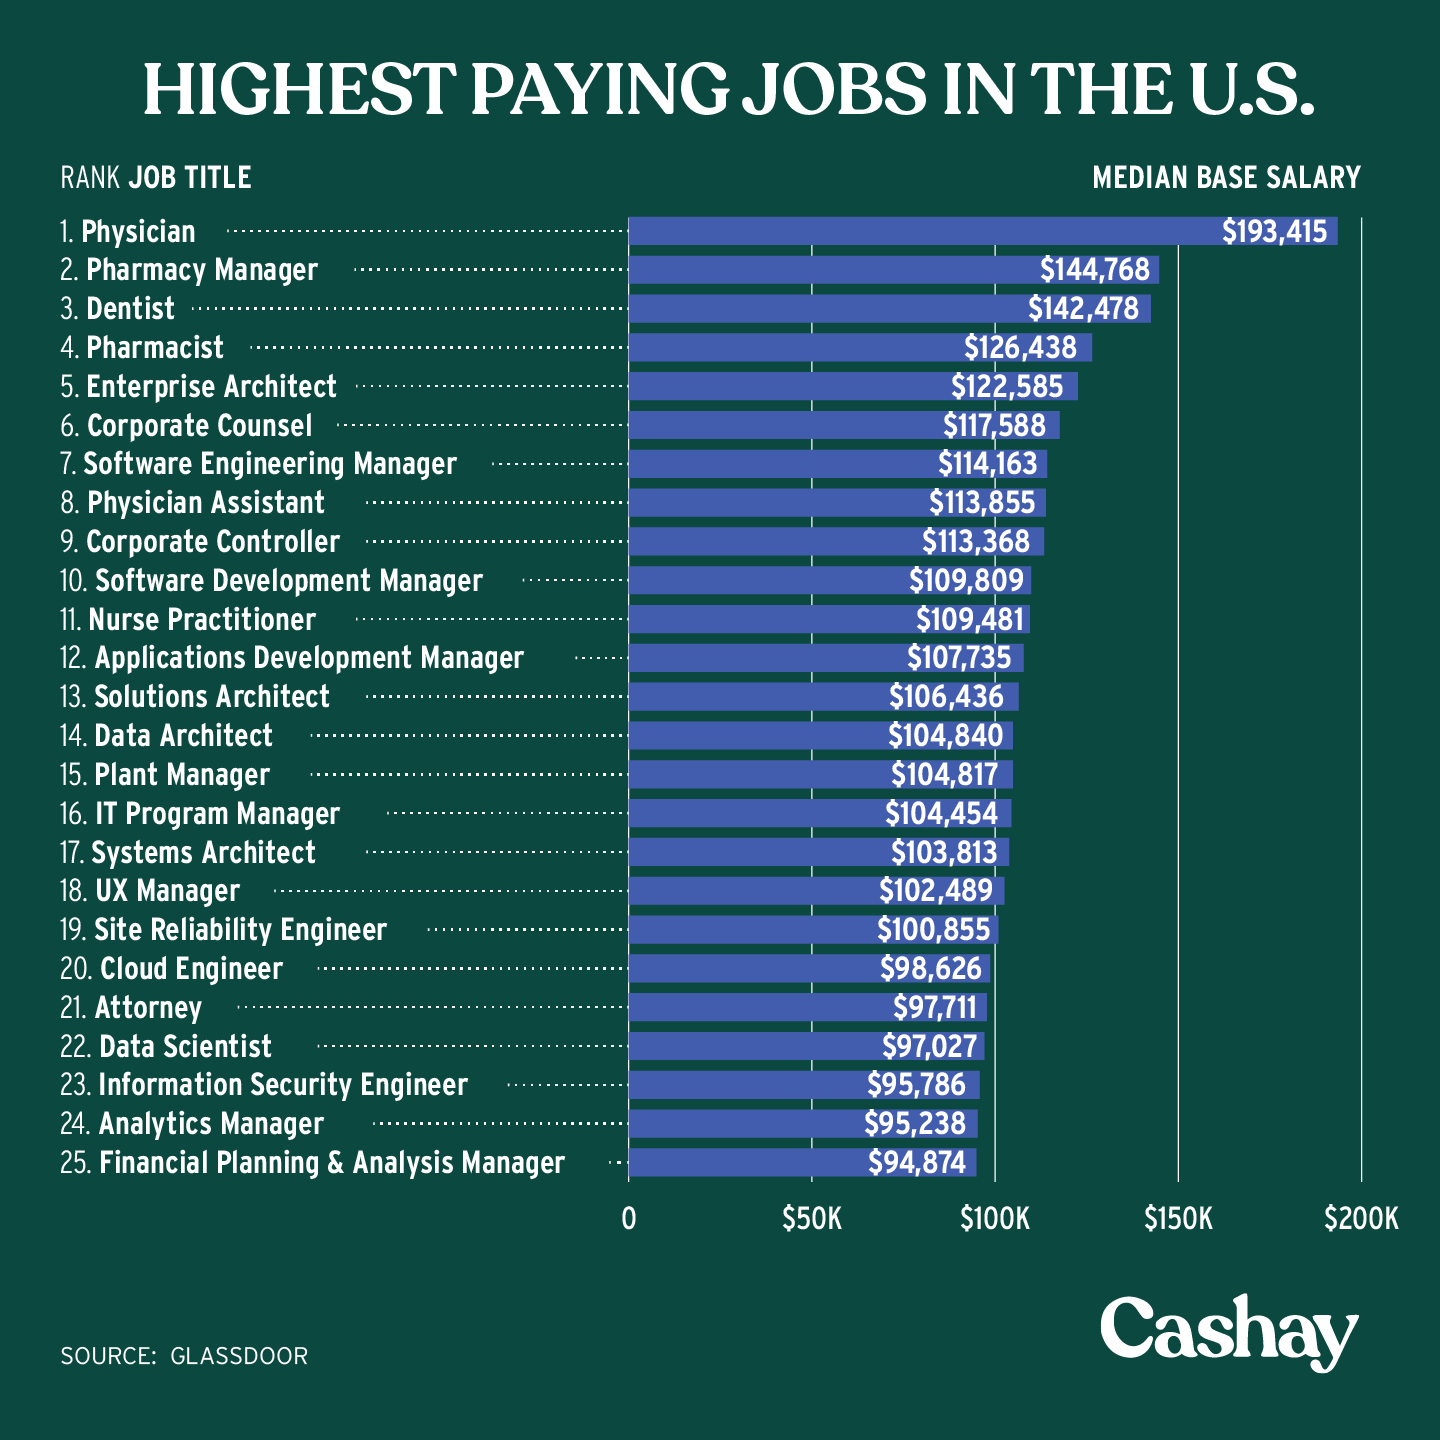 Highest Paying Jobs In The U S Personal Finance Articles High Paying Jobs Personal Finance